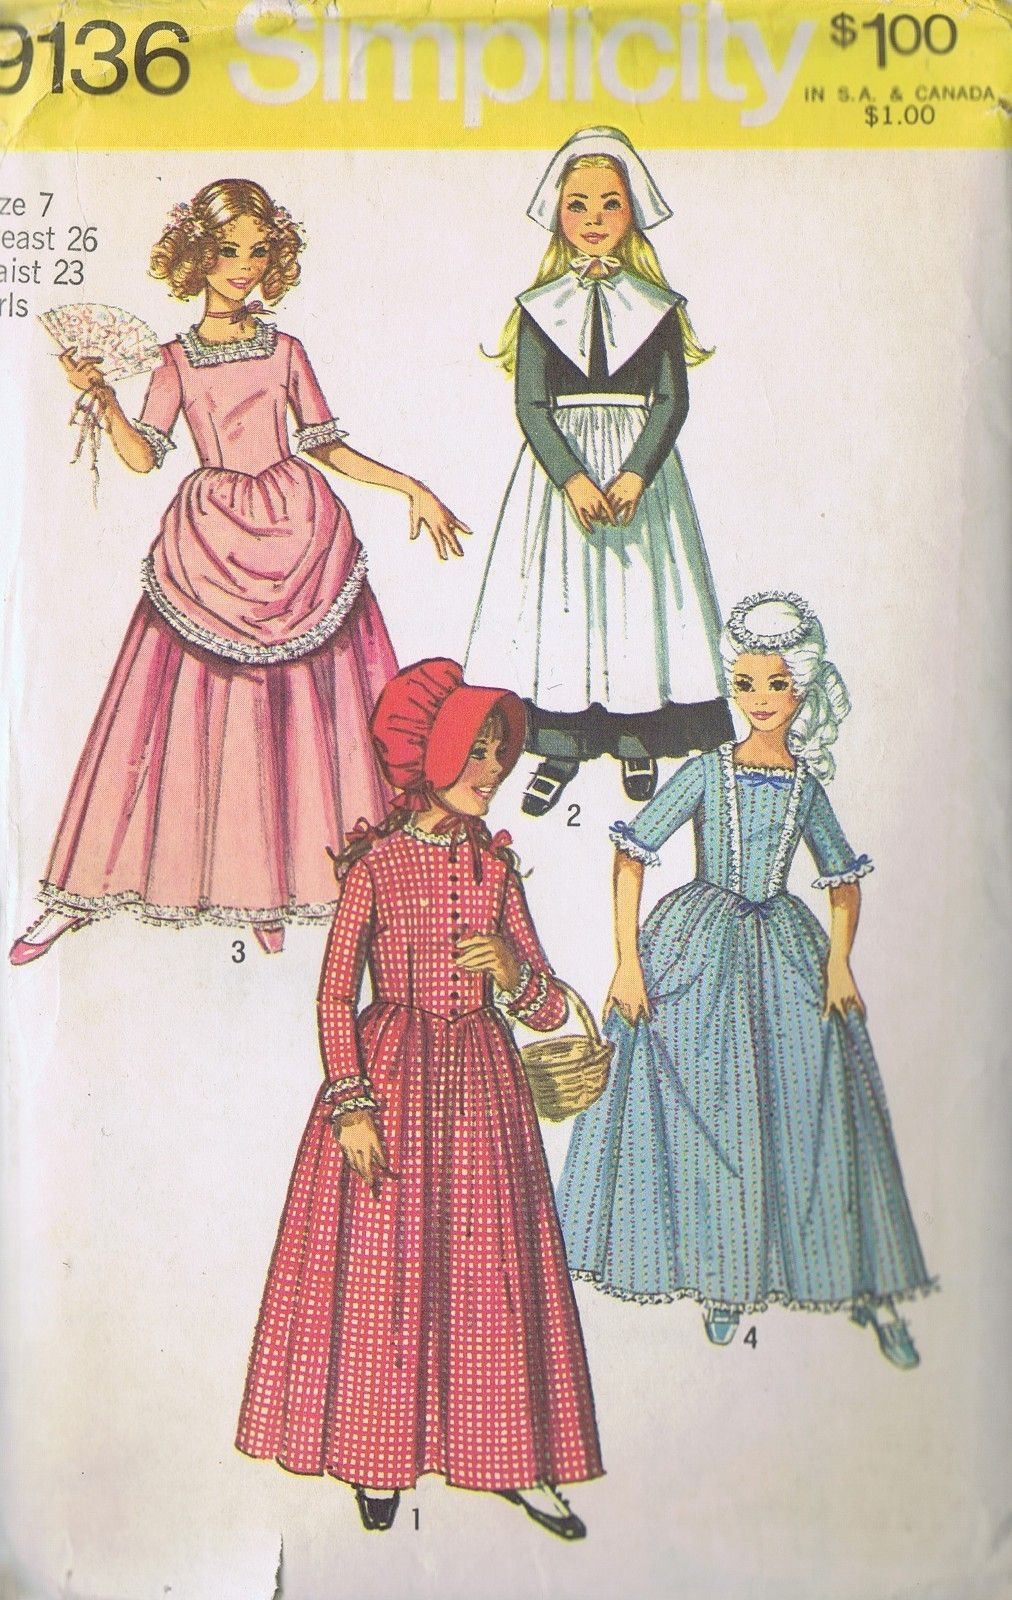 11a57bc059d8f0 COSTUME 18 AND 19TH CENTURY DRESS SEWING PATTERN GIRLS 9136 SIMPLICITY SZ 7  CUT | eBay